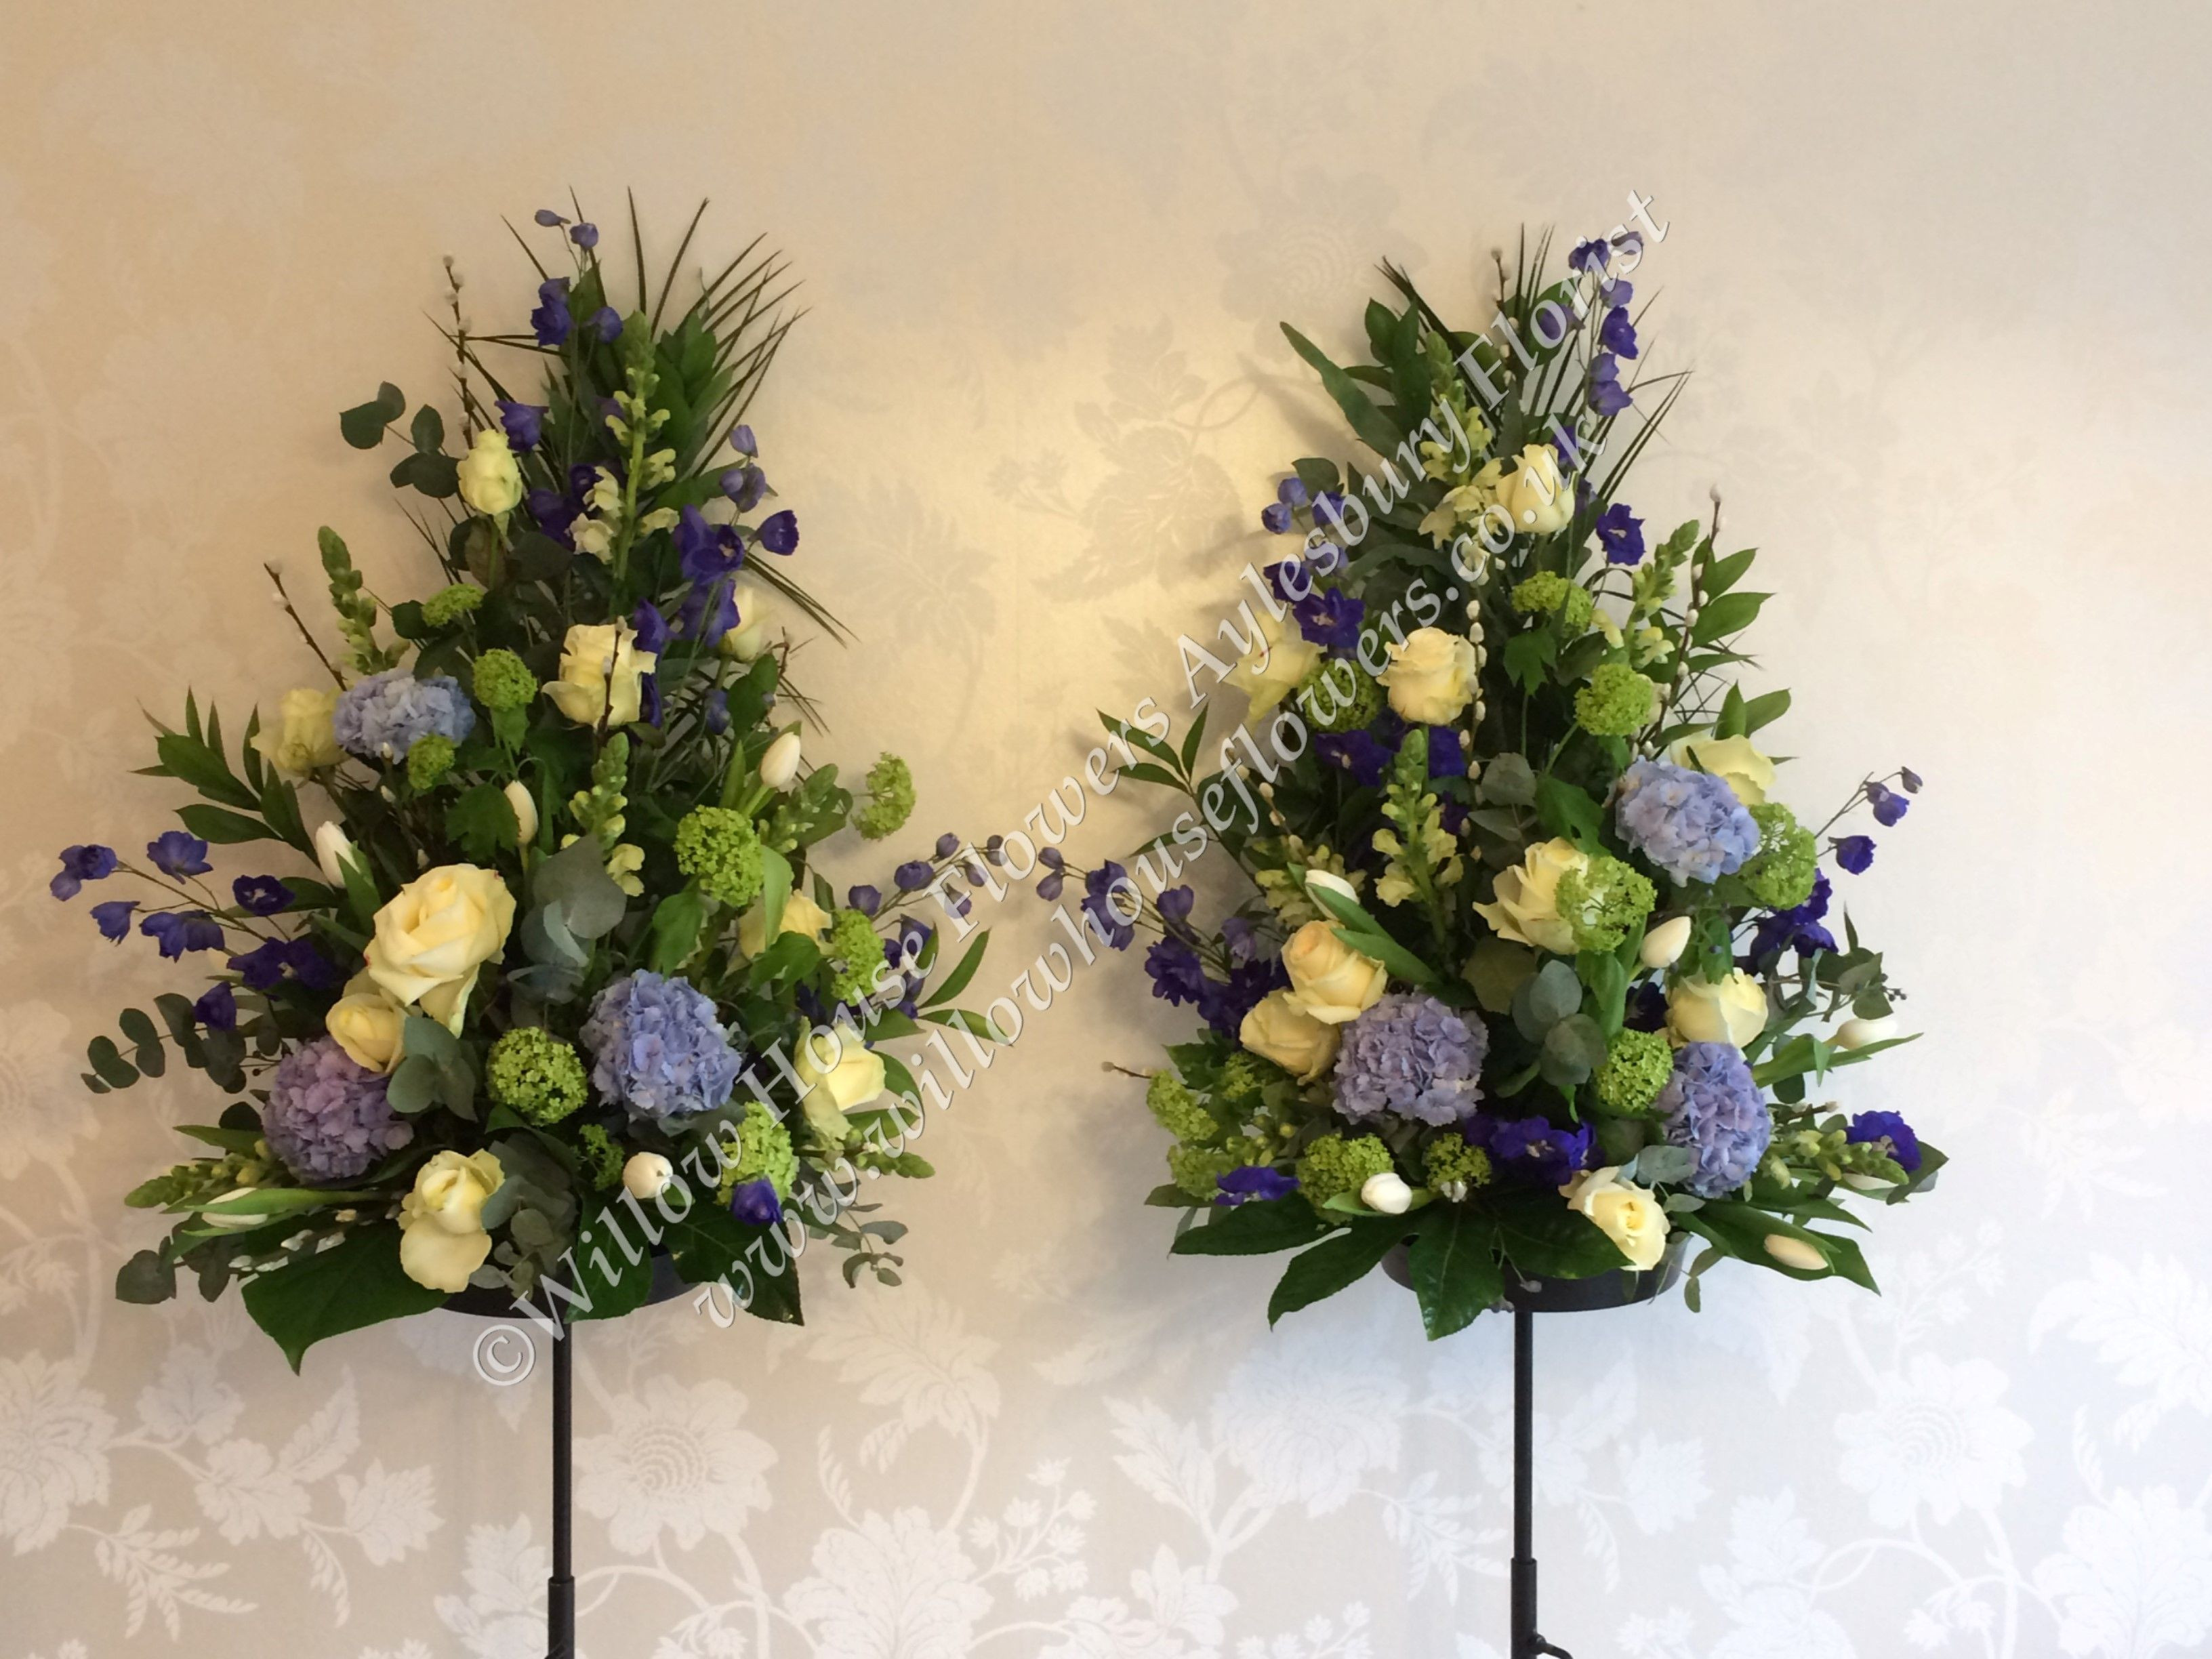 Fresh flower floral arrangement church registry office pedestal funeral flowers blue hydrangea white rose designed and created by Willow House